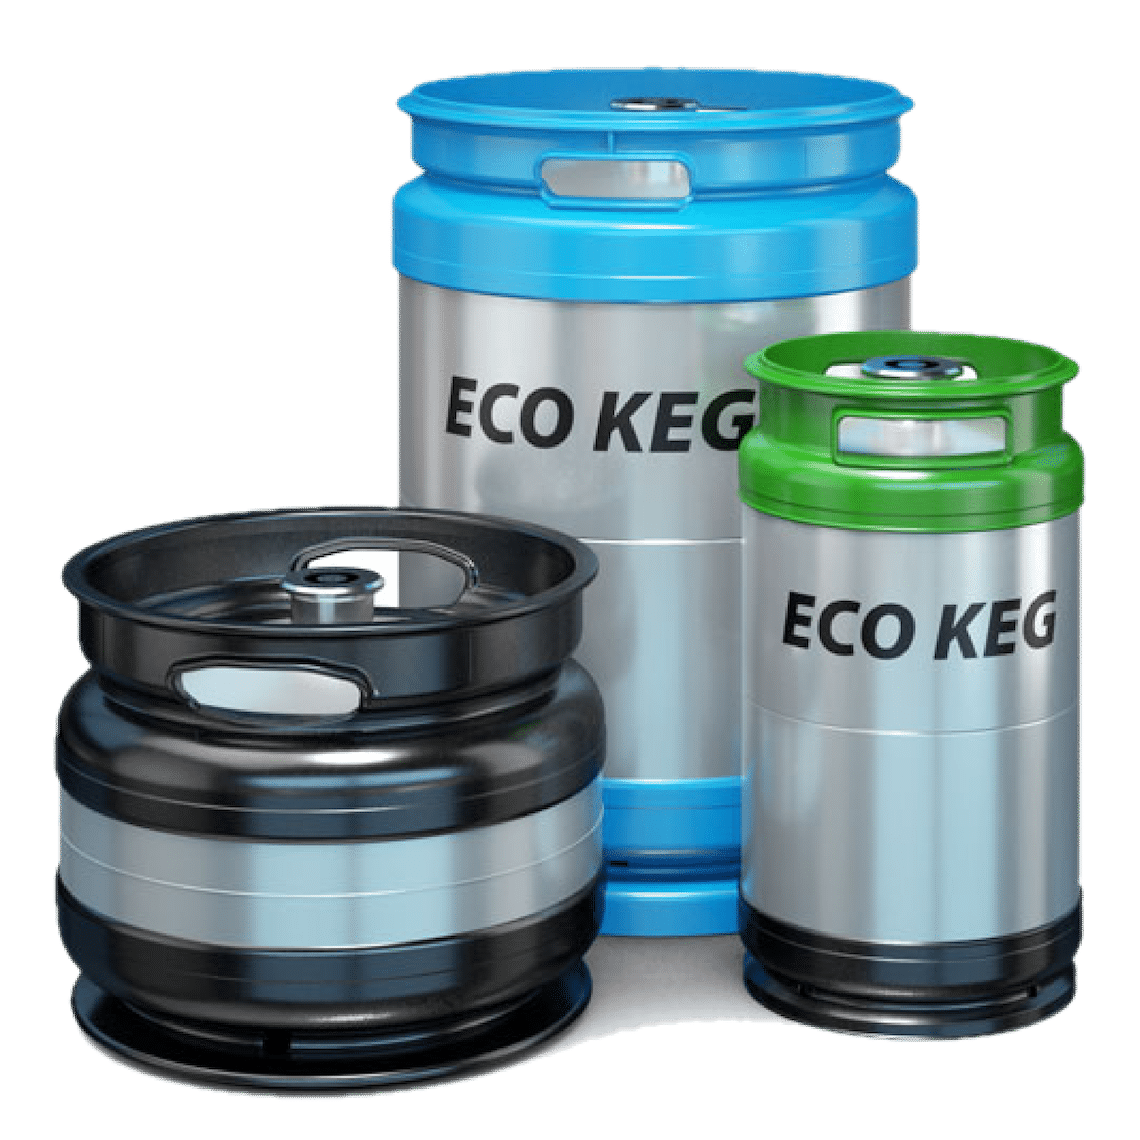 Eco Keg Schaefer Container Systems